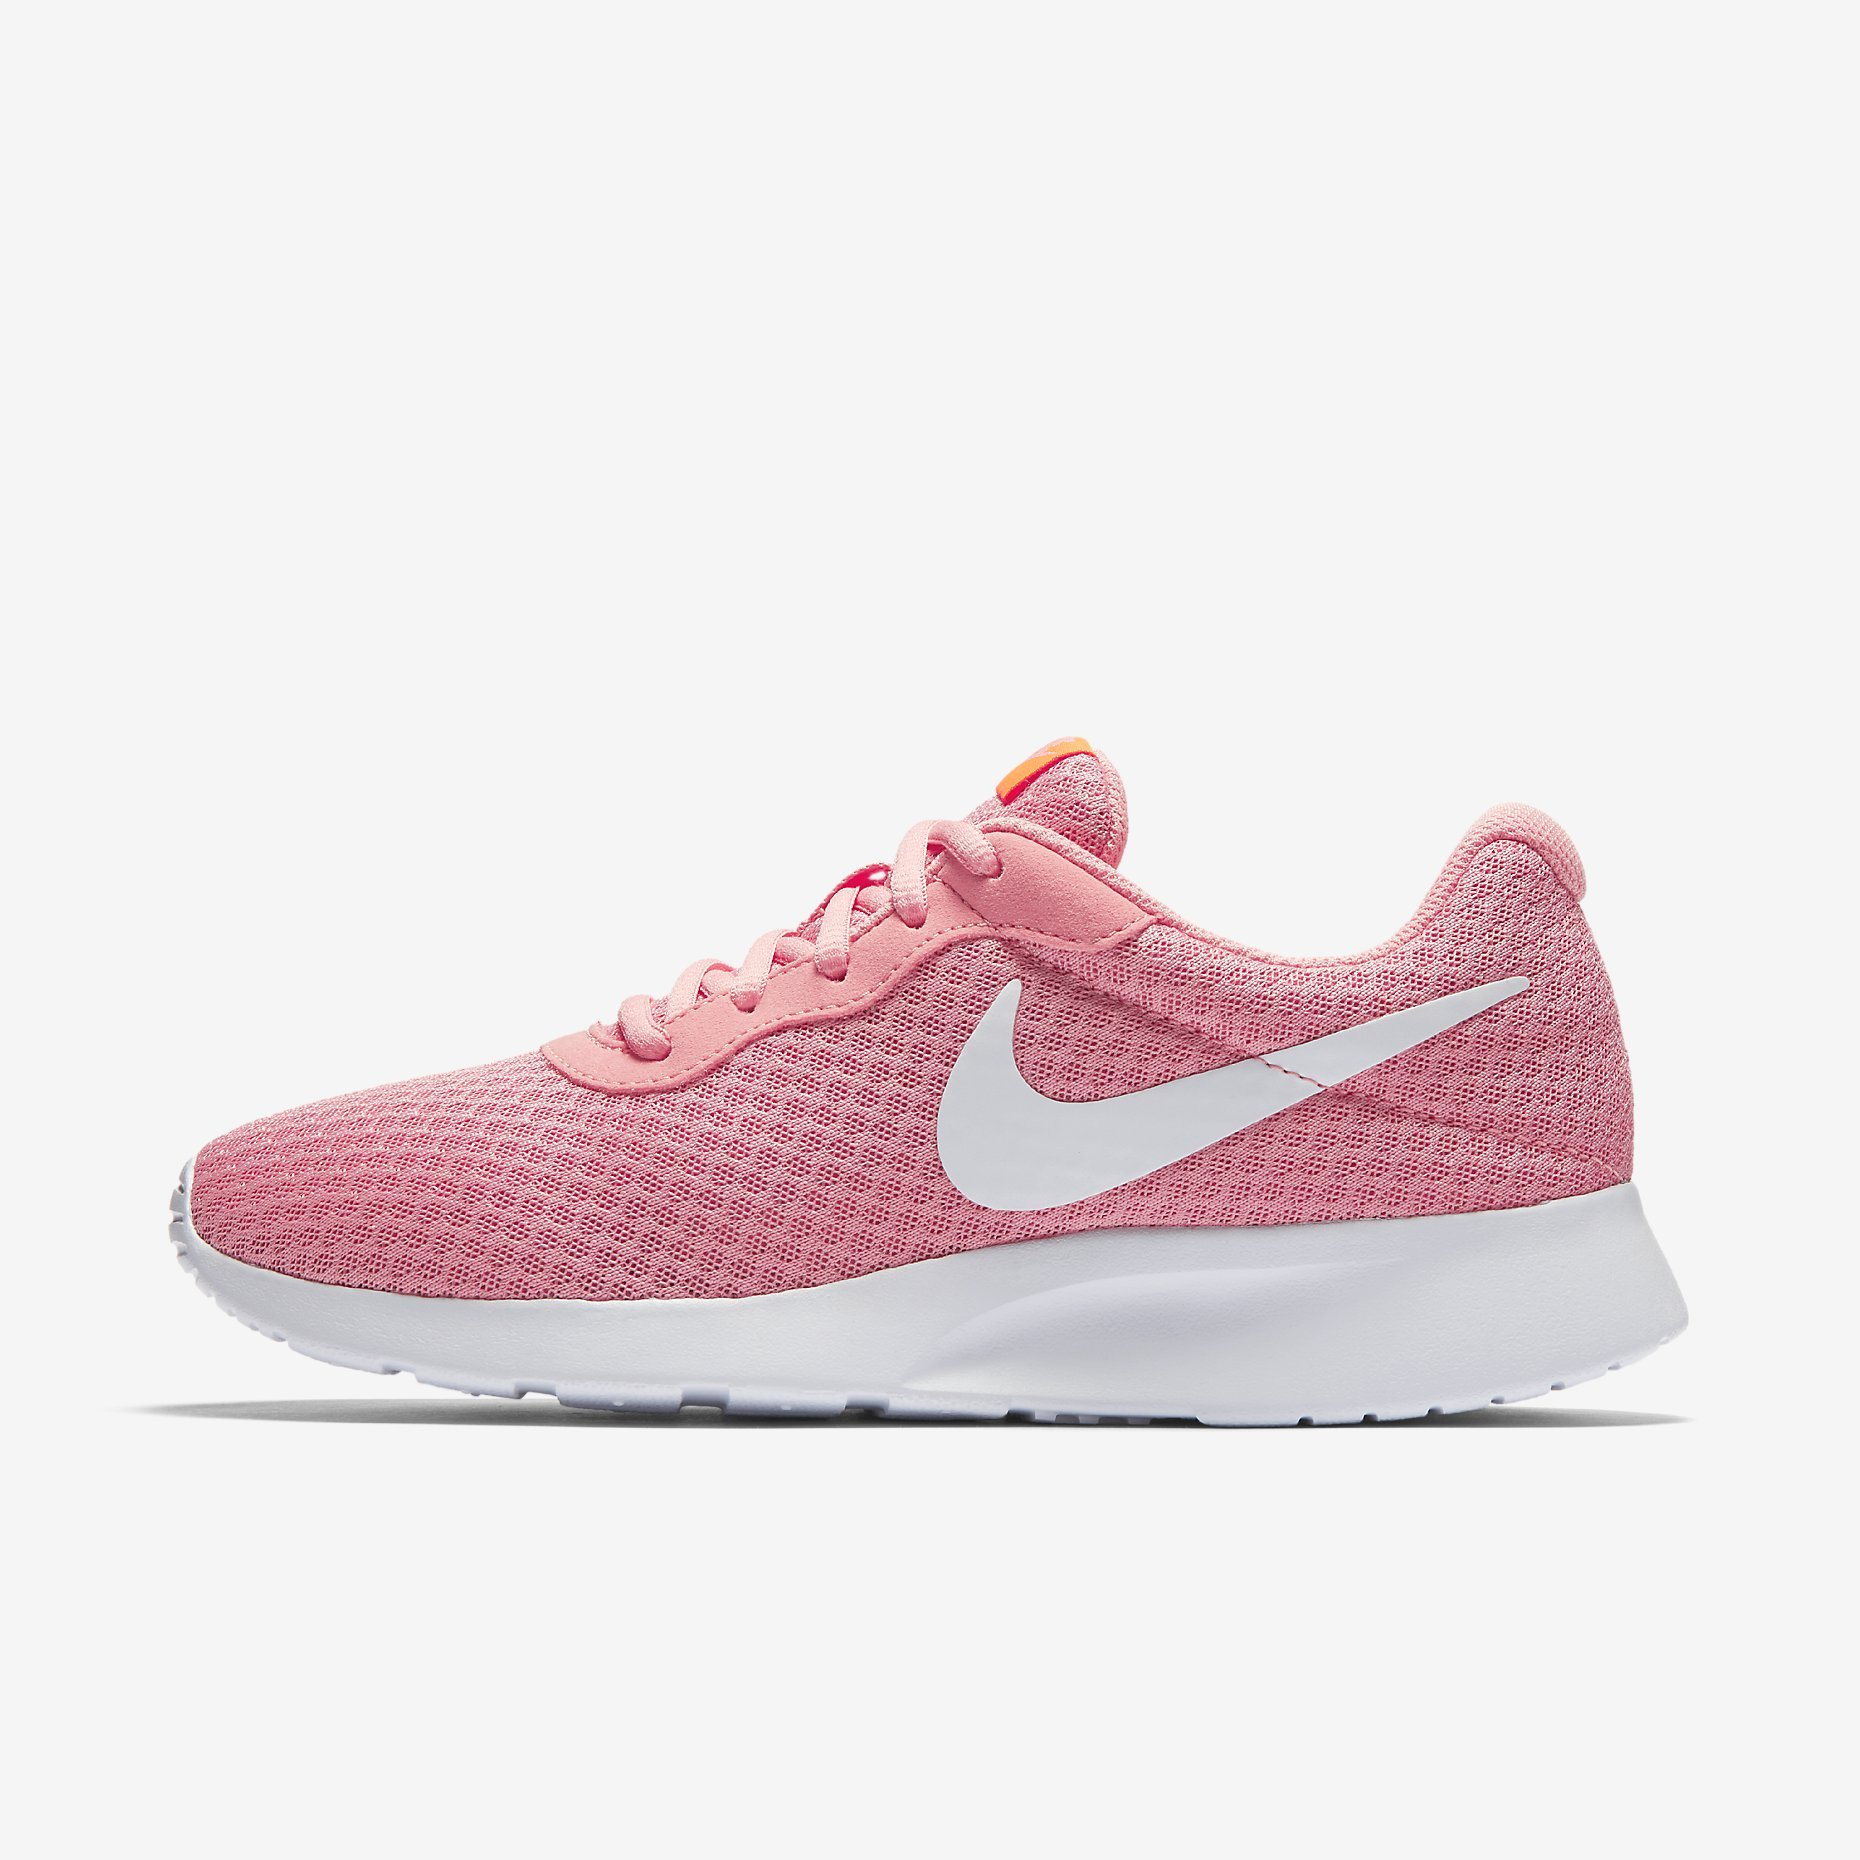 Are U2018Millennial Pinku2019 Sneakers This Yearu2019s Shoe Trend? | Fashion News U2013 Conversations About Her